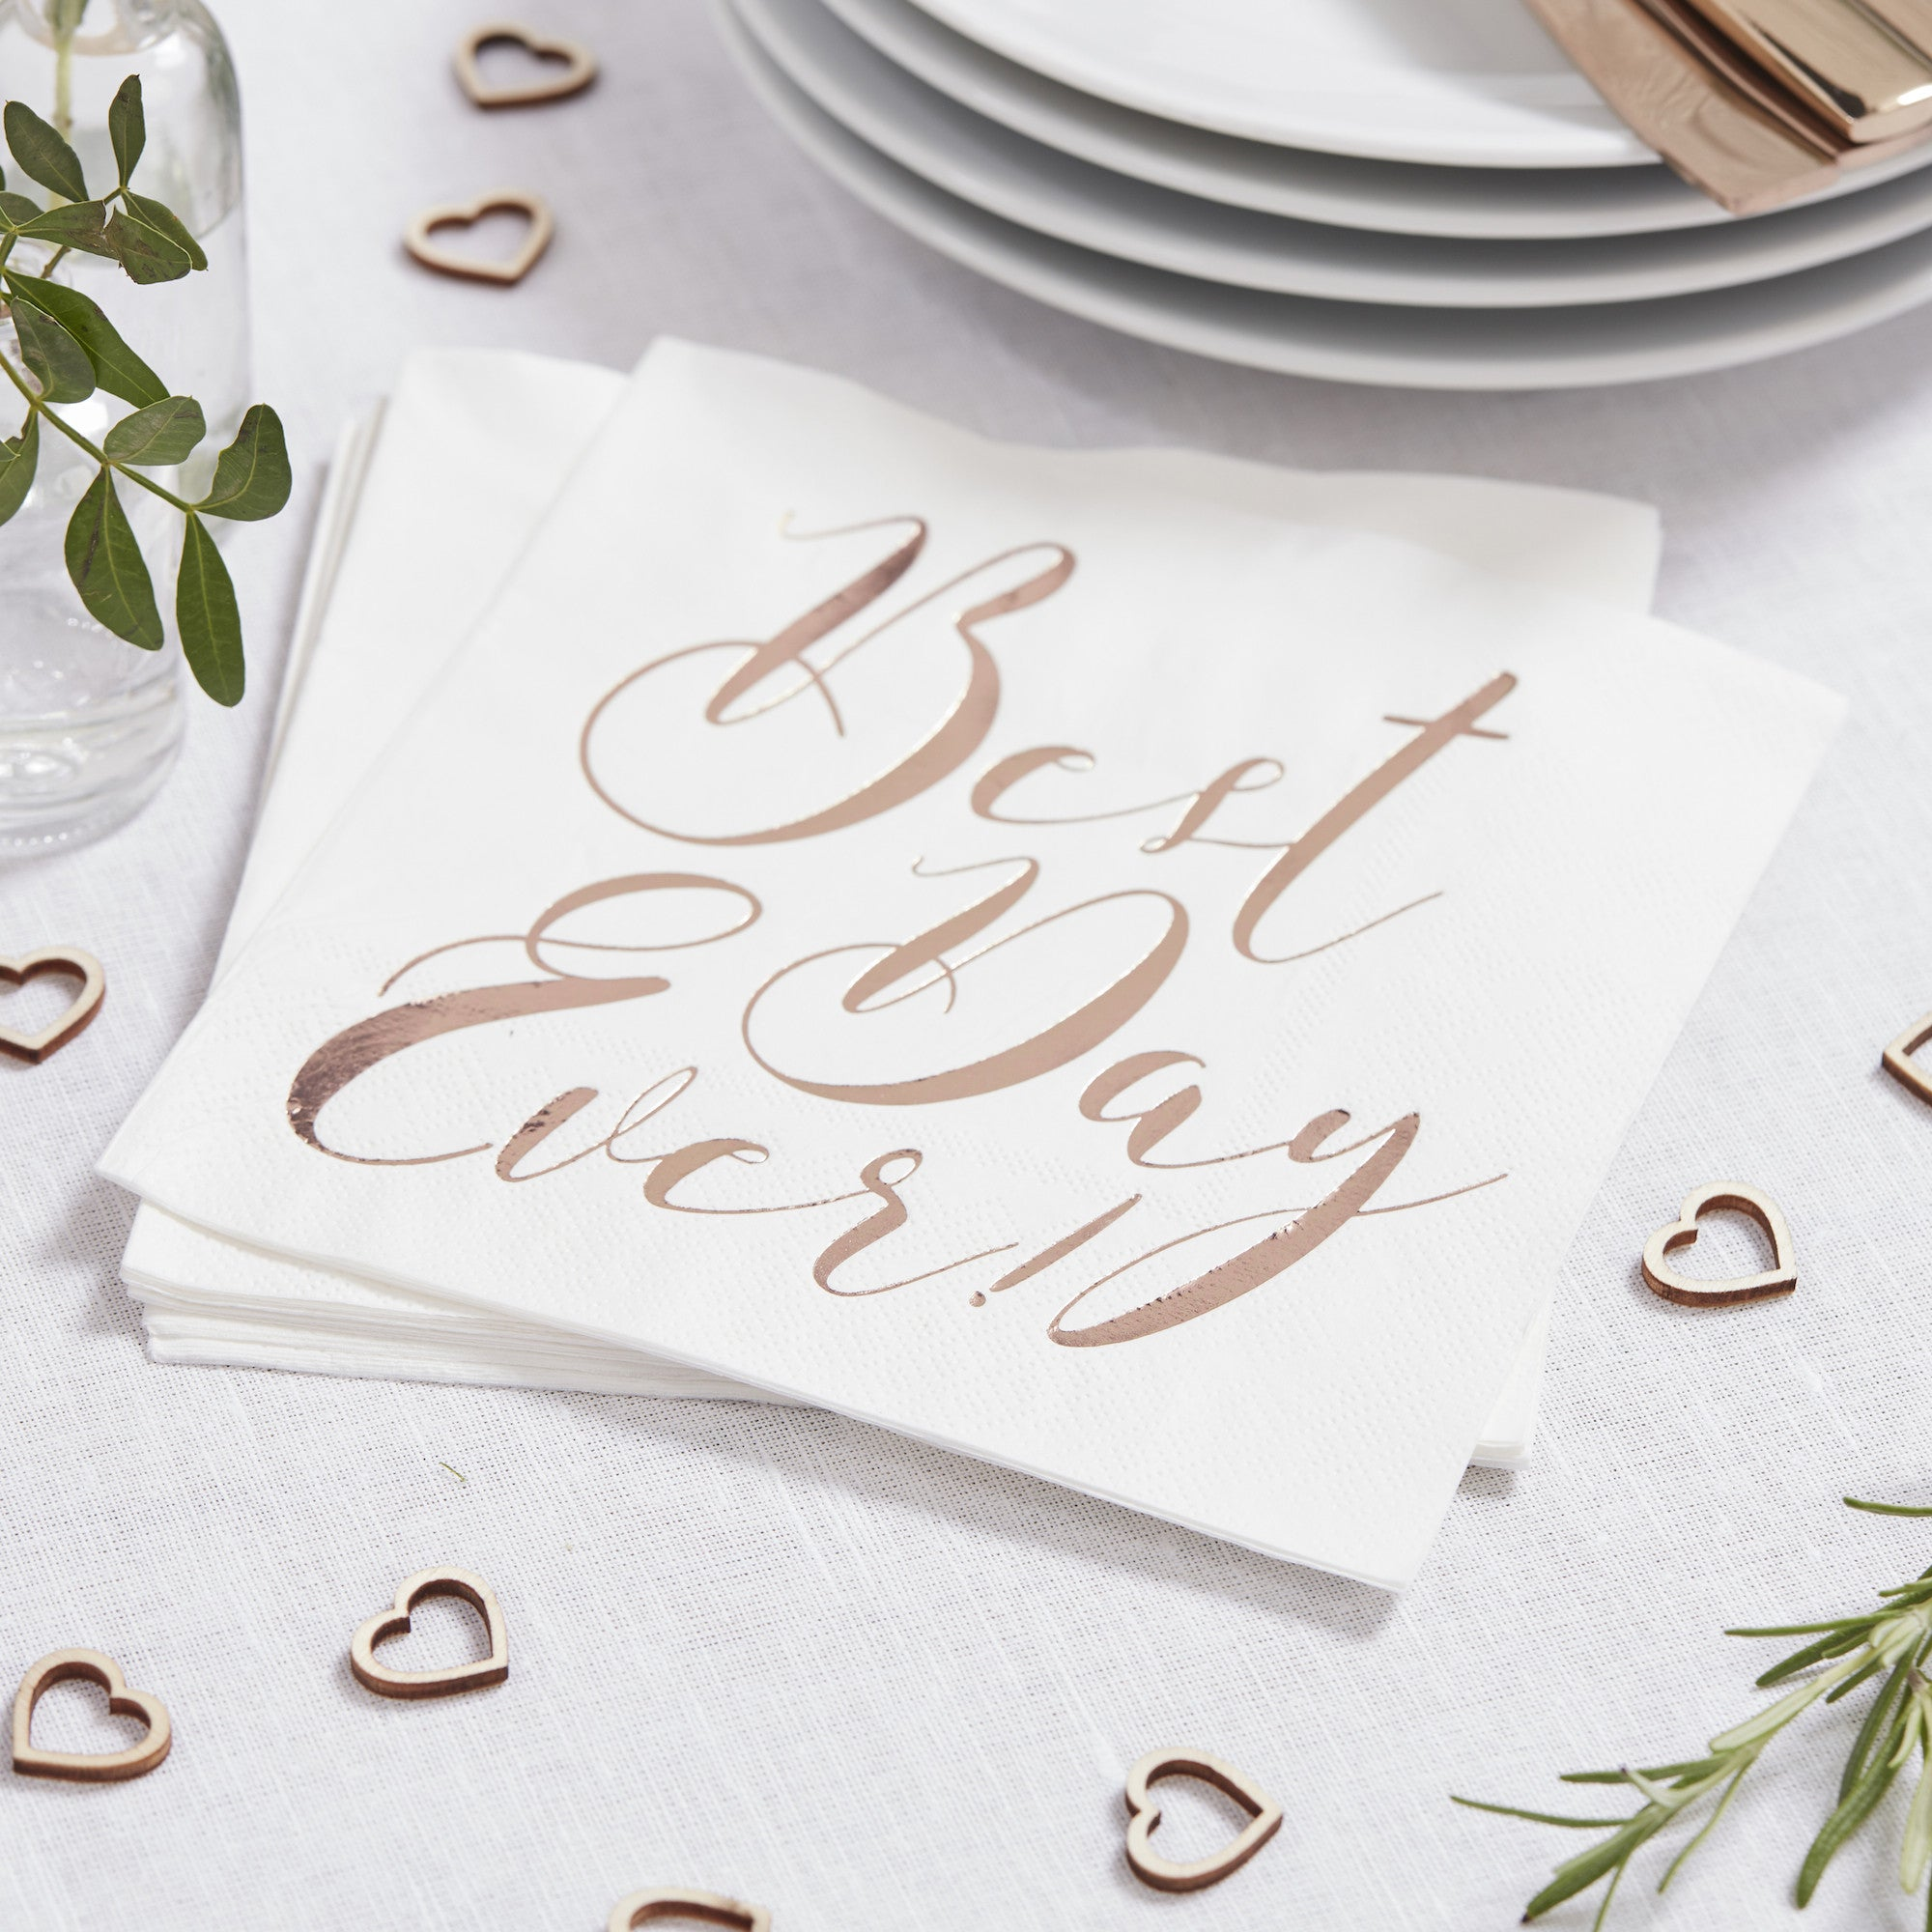 Rose Gold Best Day Ever Napkins - The Sweet Hostess